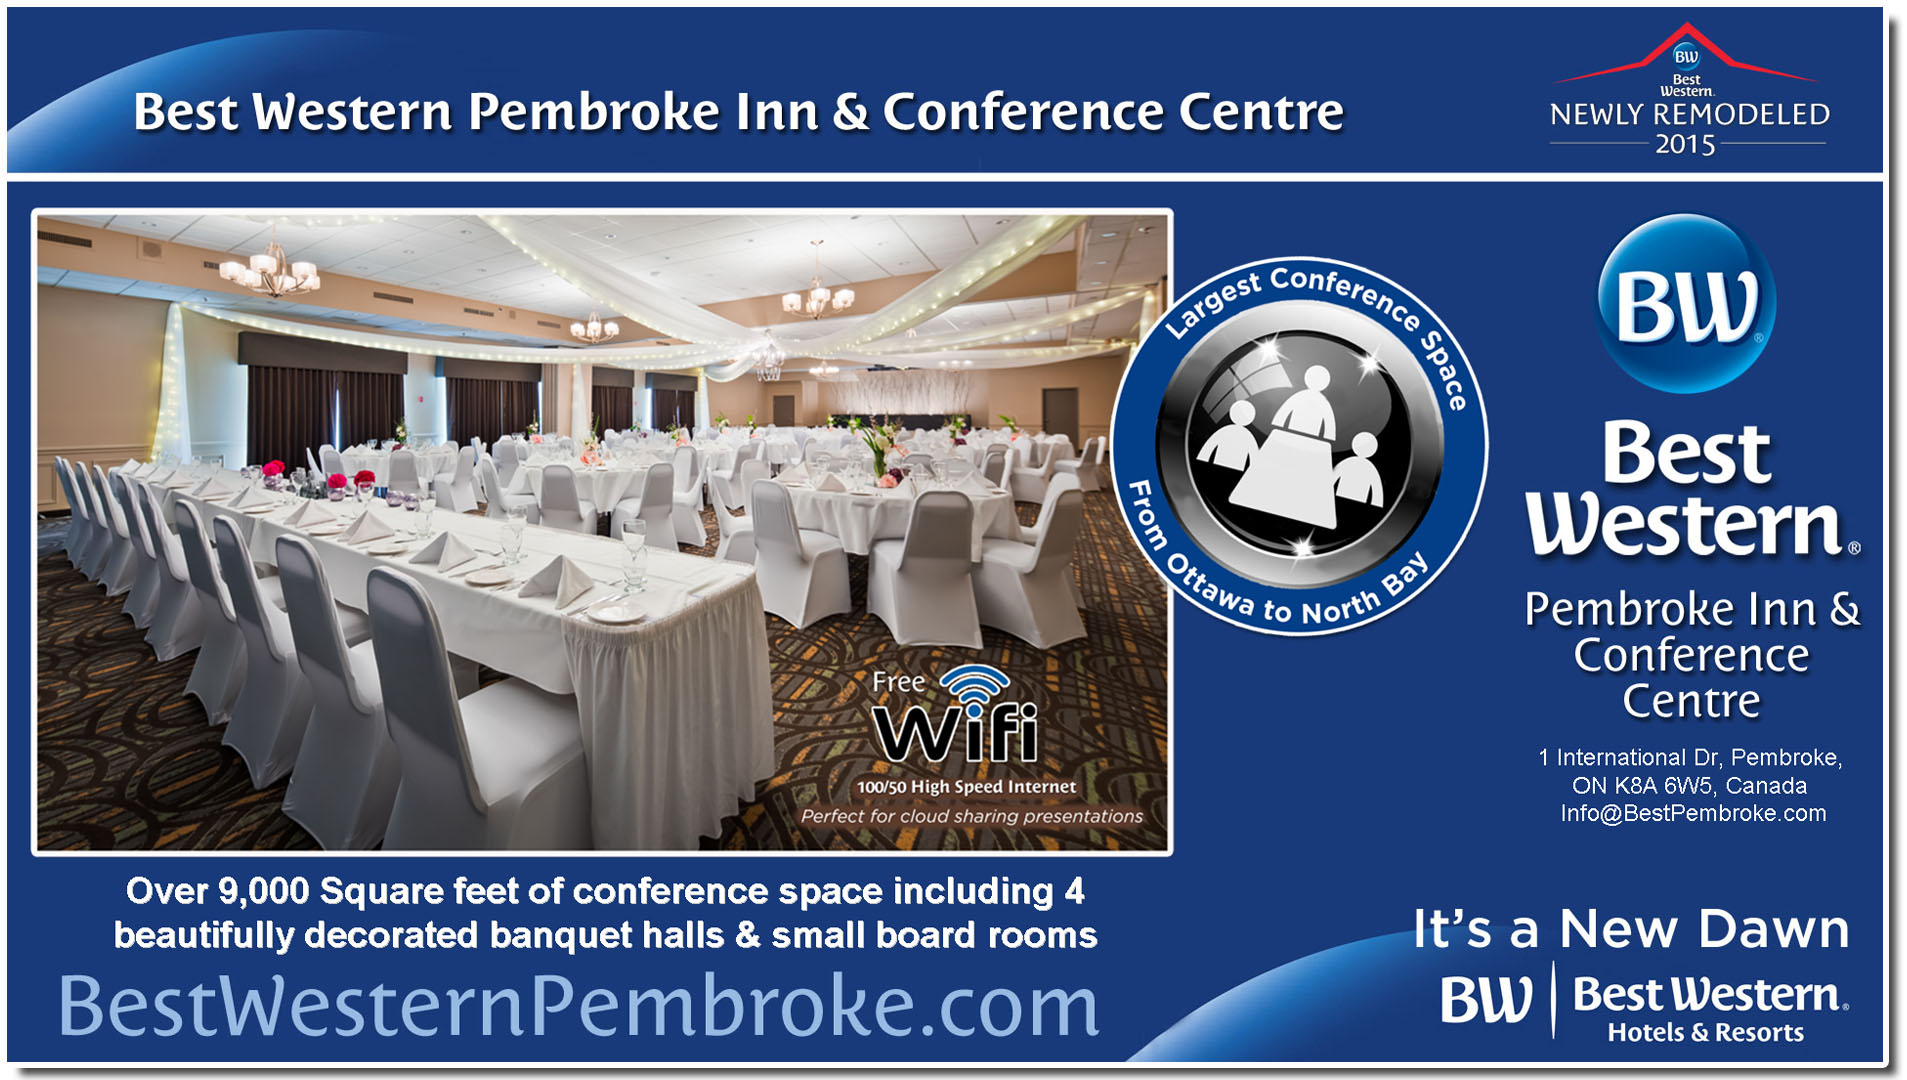 Over 9,000 Square Feet of Conference & Banquet Space